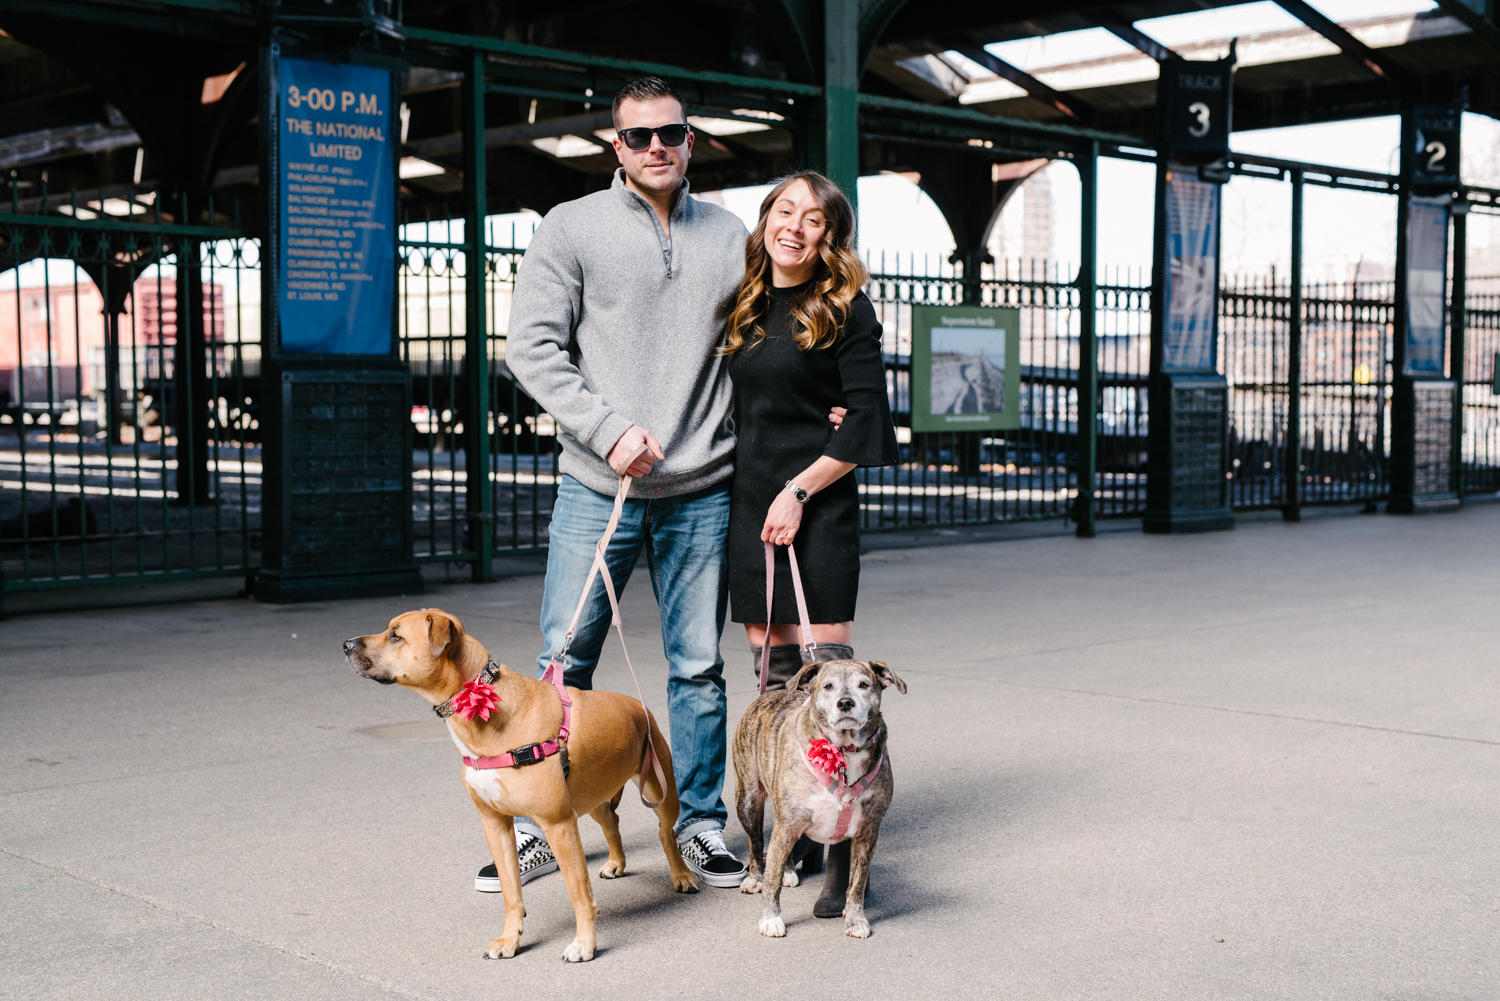 Liberty State Park Engagement Session- Danielle + Joe- New Jersey- Olivia Christina Photo-178.jpg